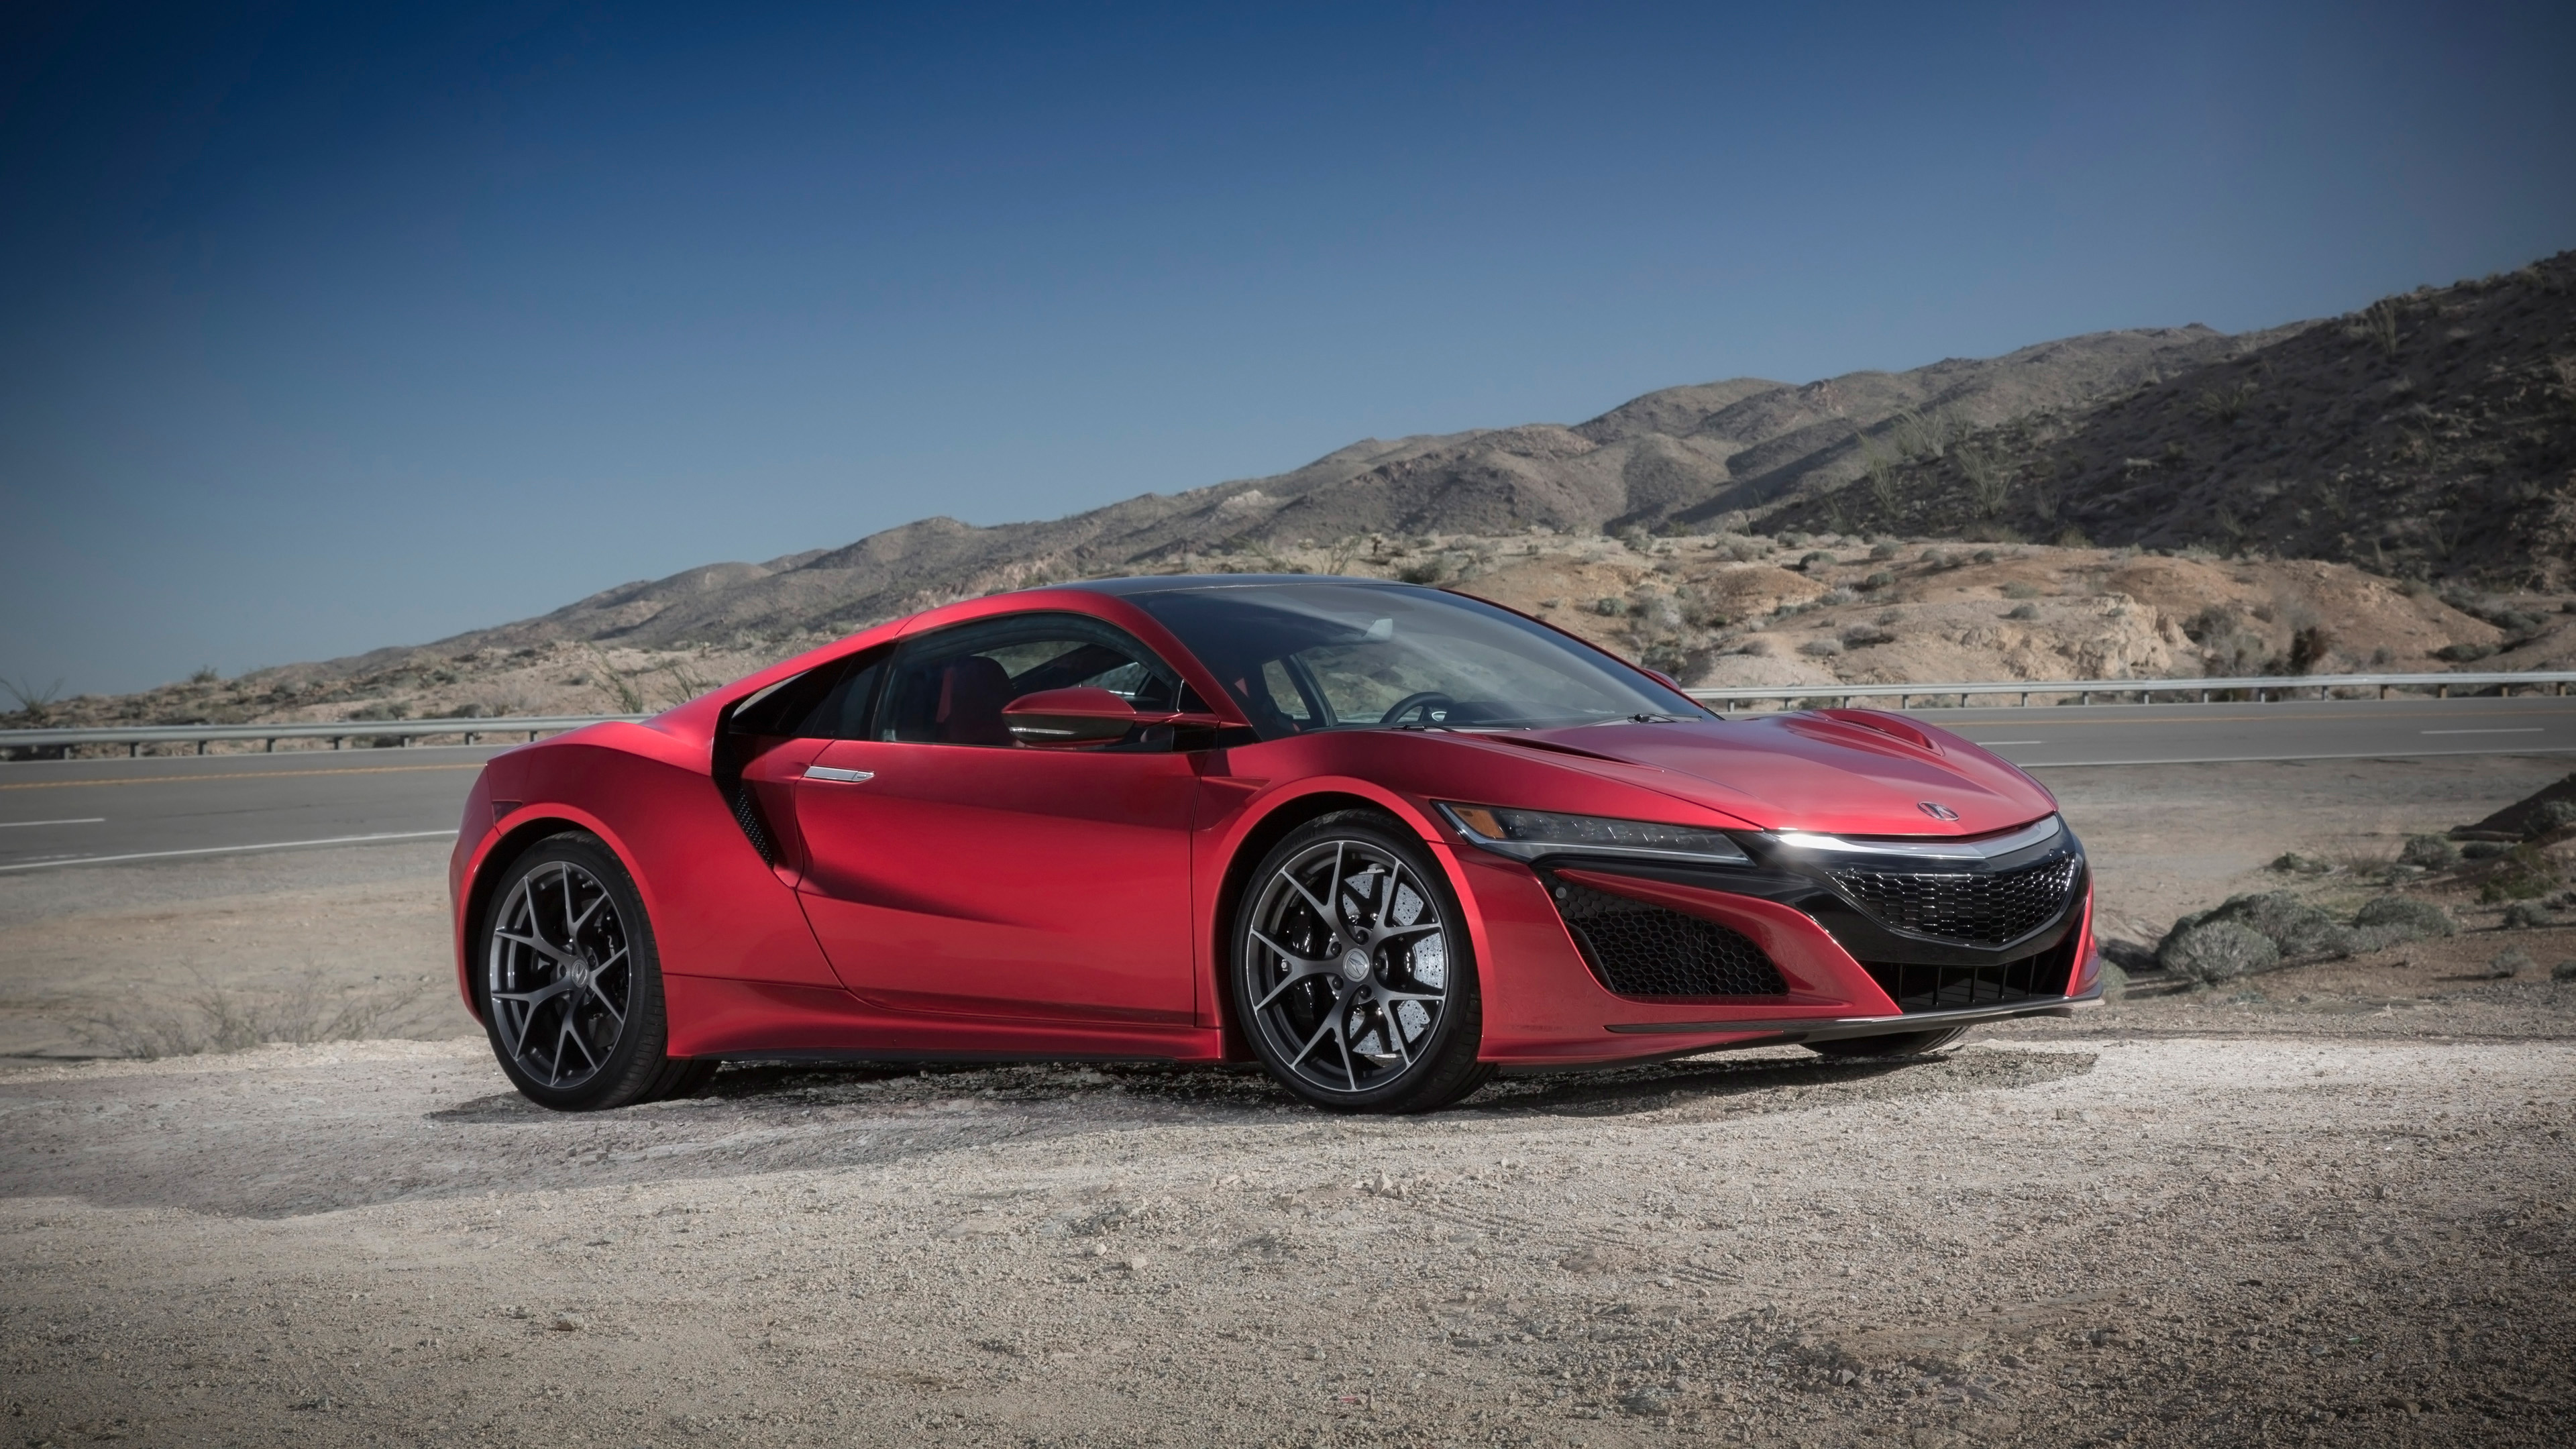 2017 Acura NSX Red 3 Wallpaper | HD Car Wallpapers | ID #8239